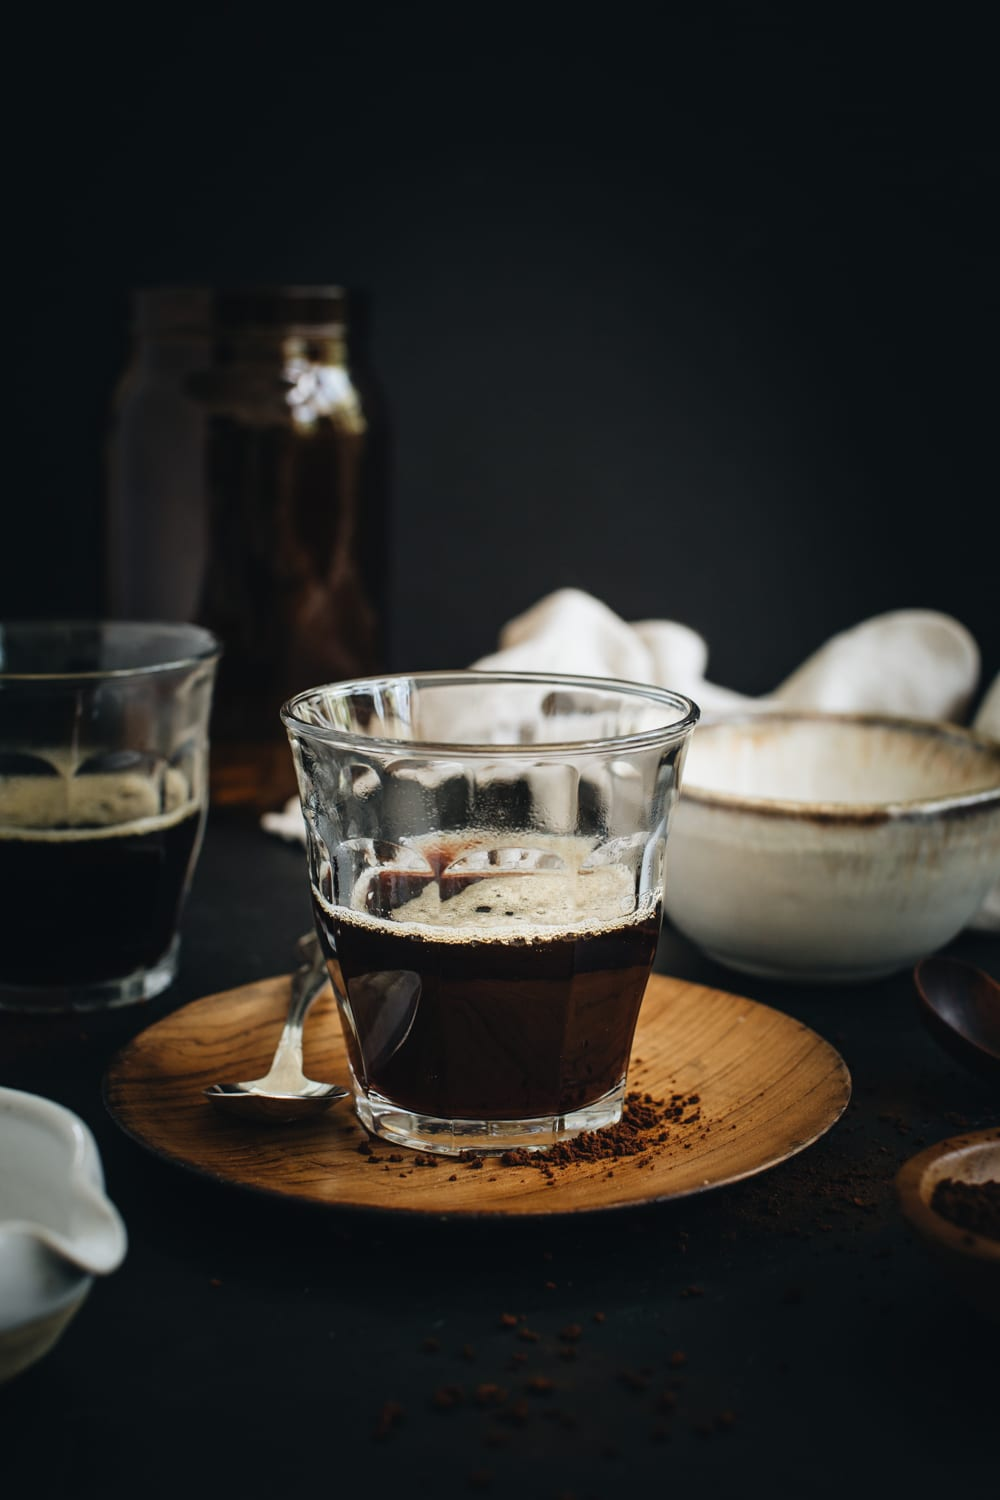 espresso in a clear glass sitting on wooden plate with silver spoon